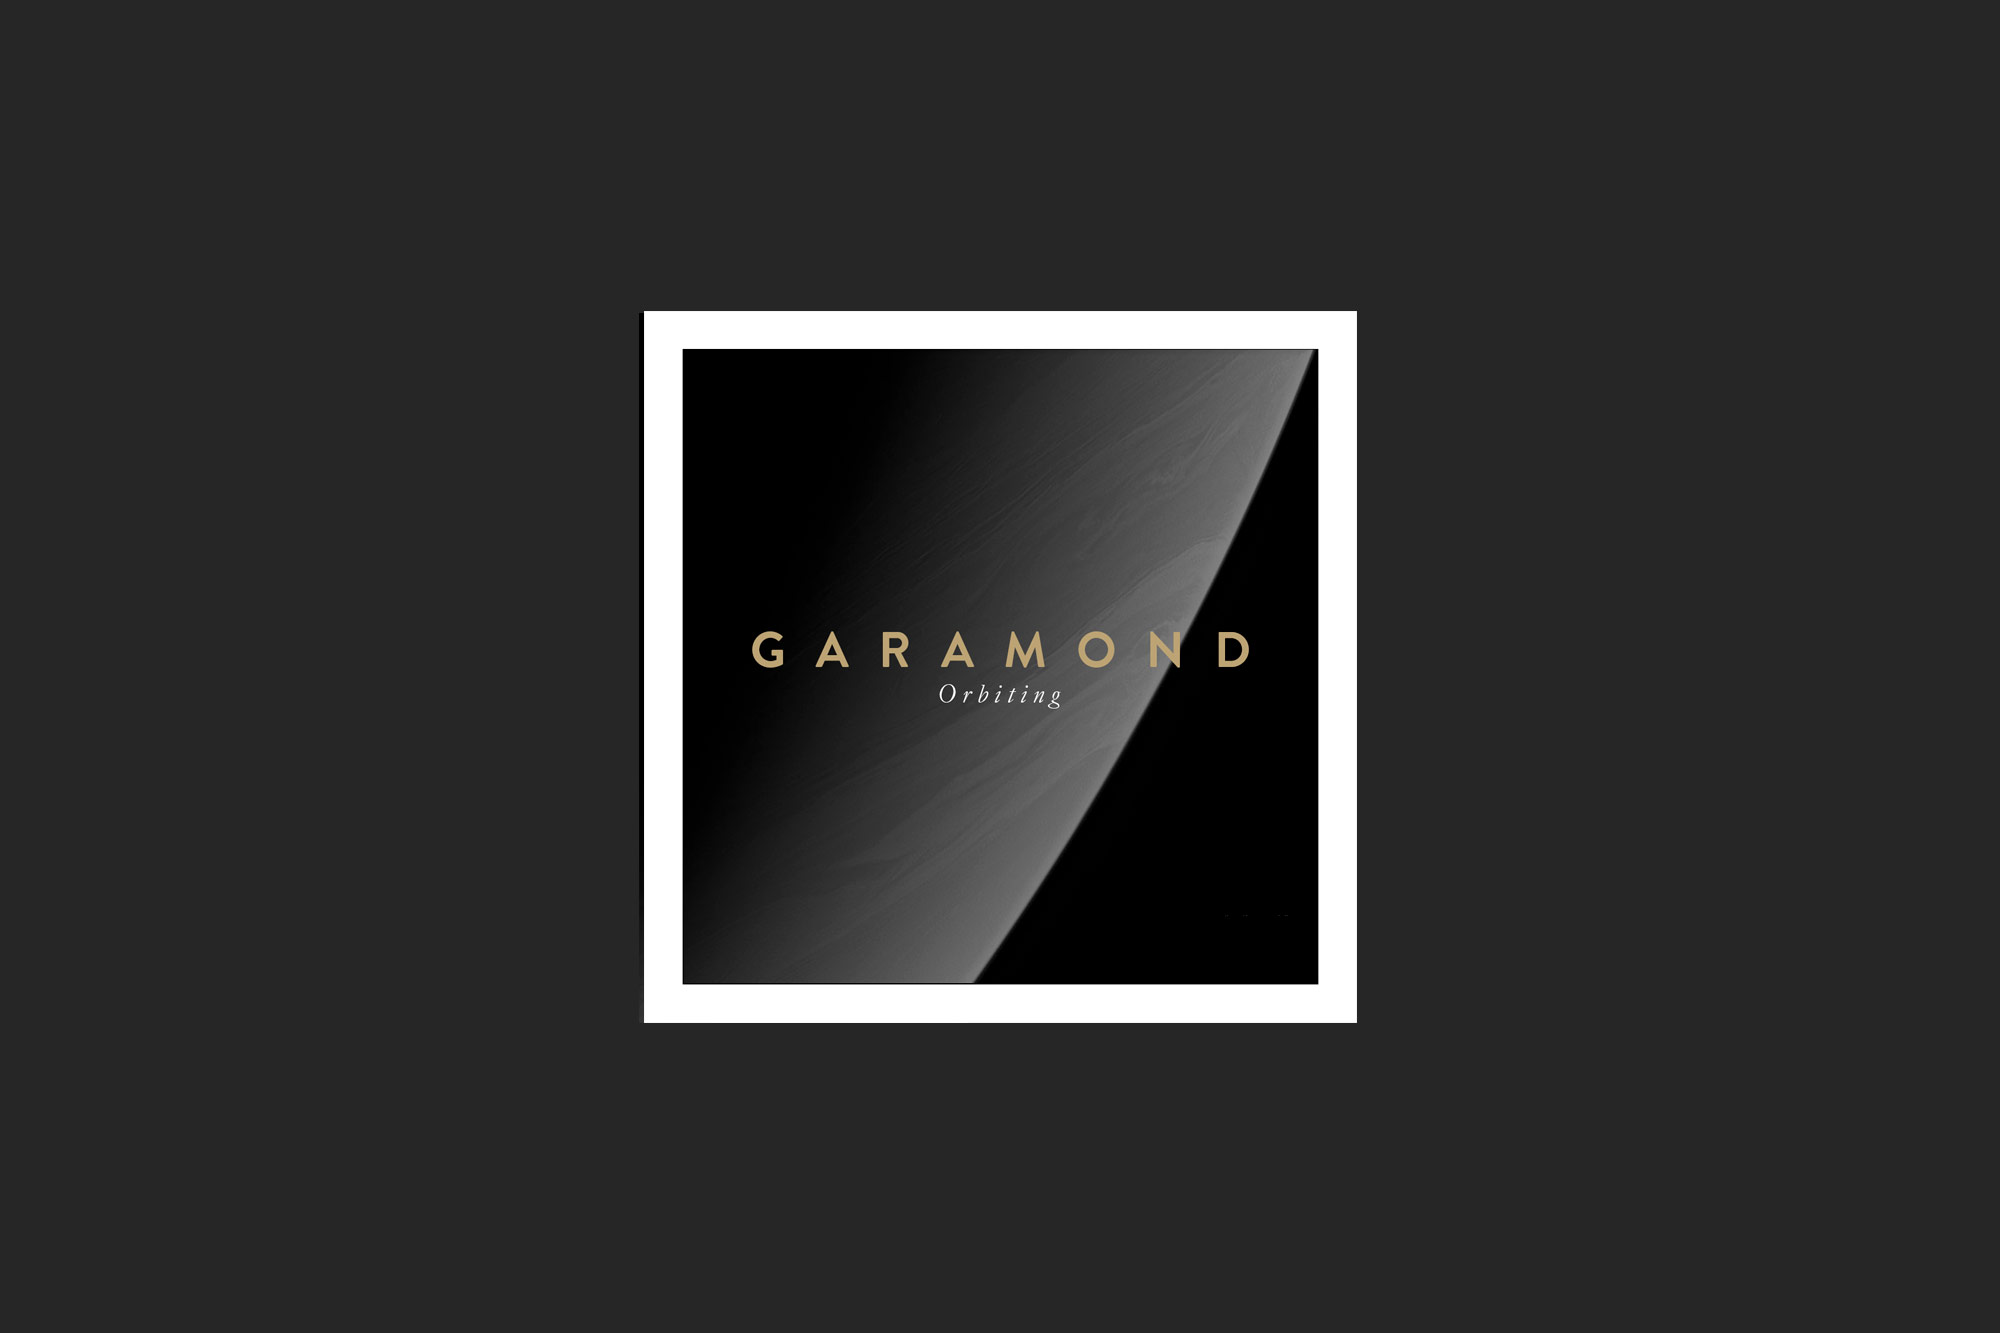 gpj-design-garamond-music-cs-04